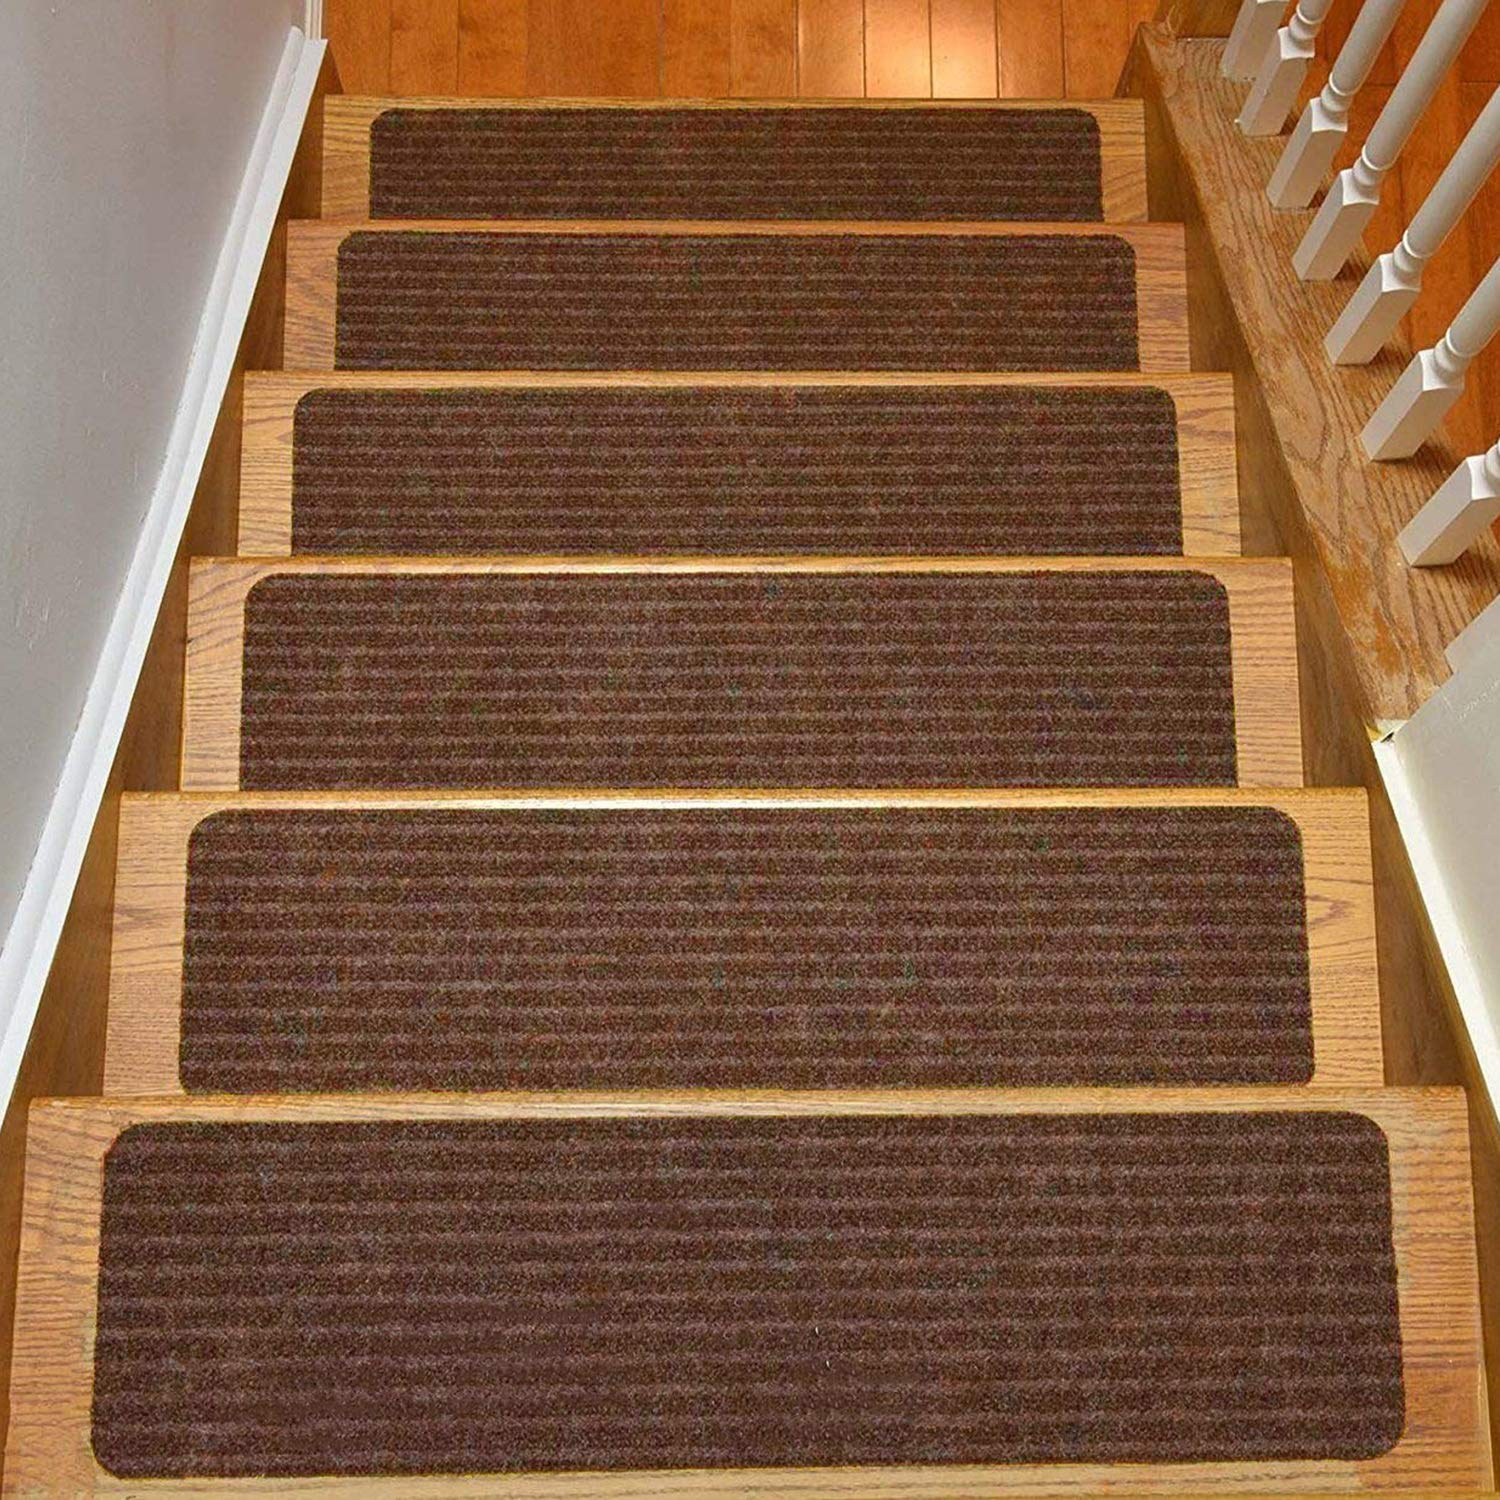 Stair Treads Collection Set of 13 Indoor Skid Slip Resistant Brown Carpet Stair Tread Treads (8 inch x 30 inch) (Brown, Set of 13) by RugStylesOnline